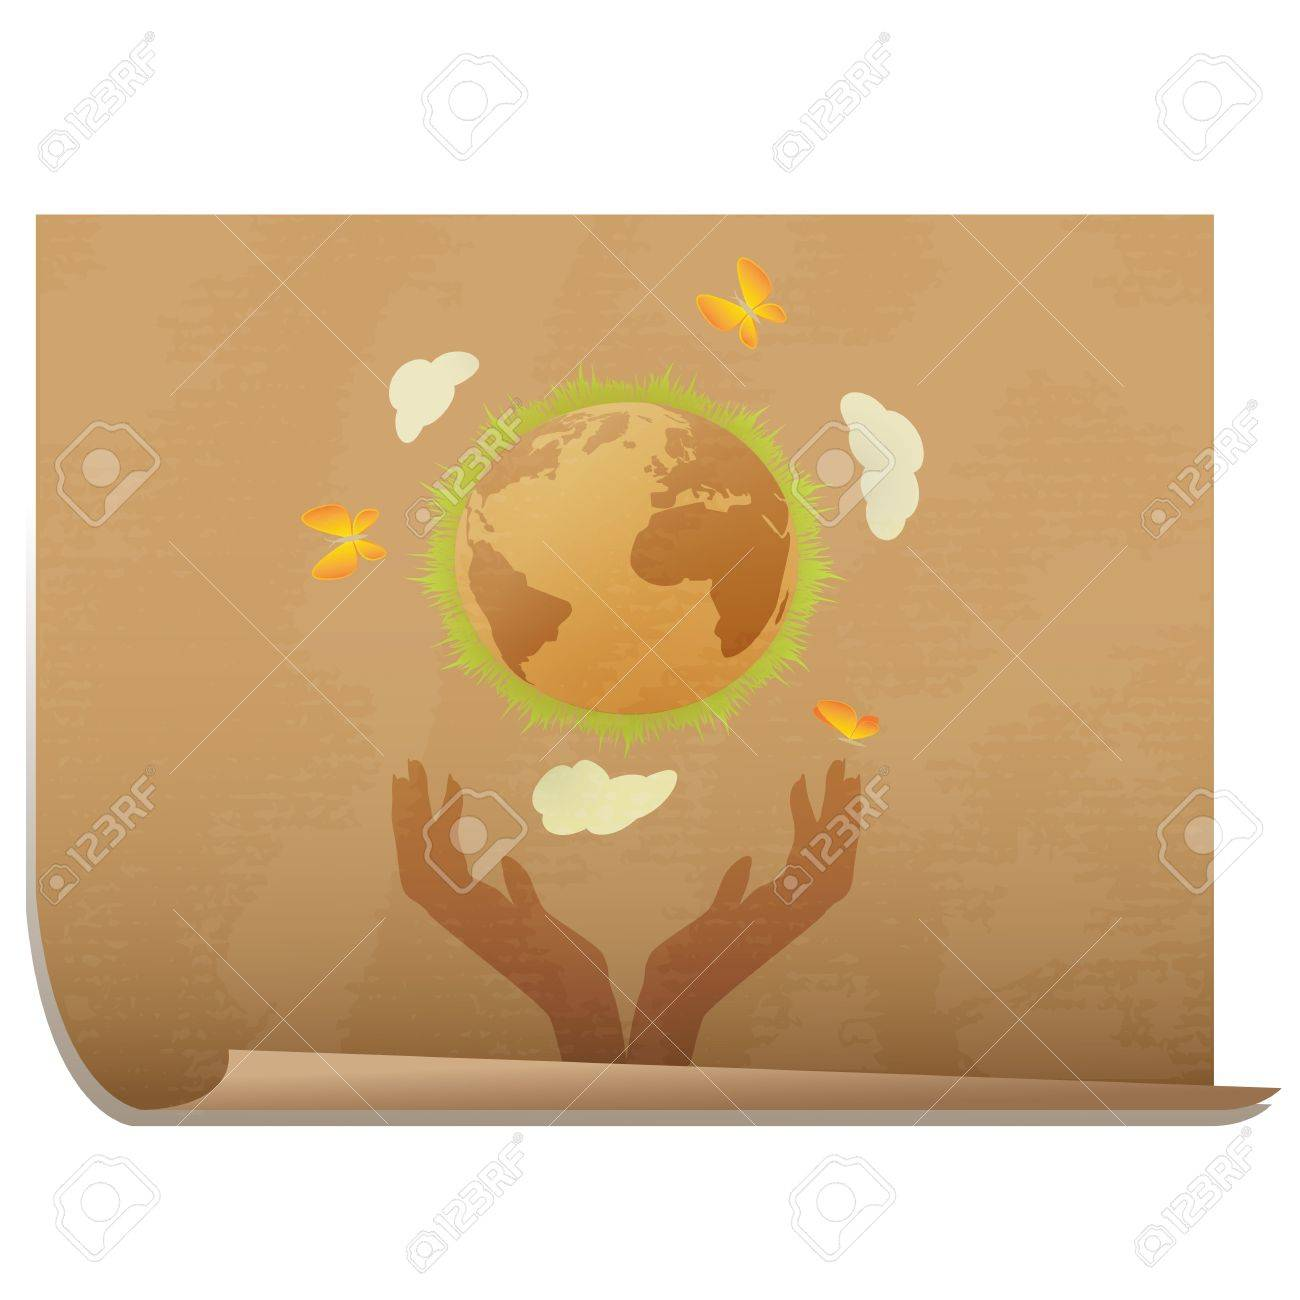 Protect the planet elegant banner/ Hands holding the earth with grass and butterflies, on carton like textured paper Stock Vector - 16494534